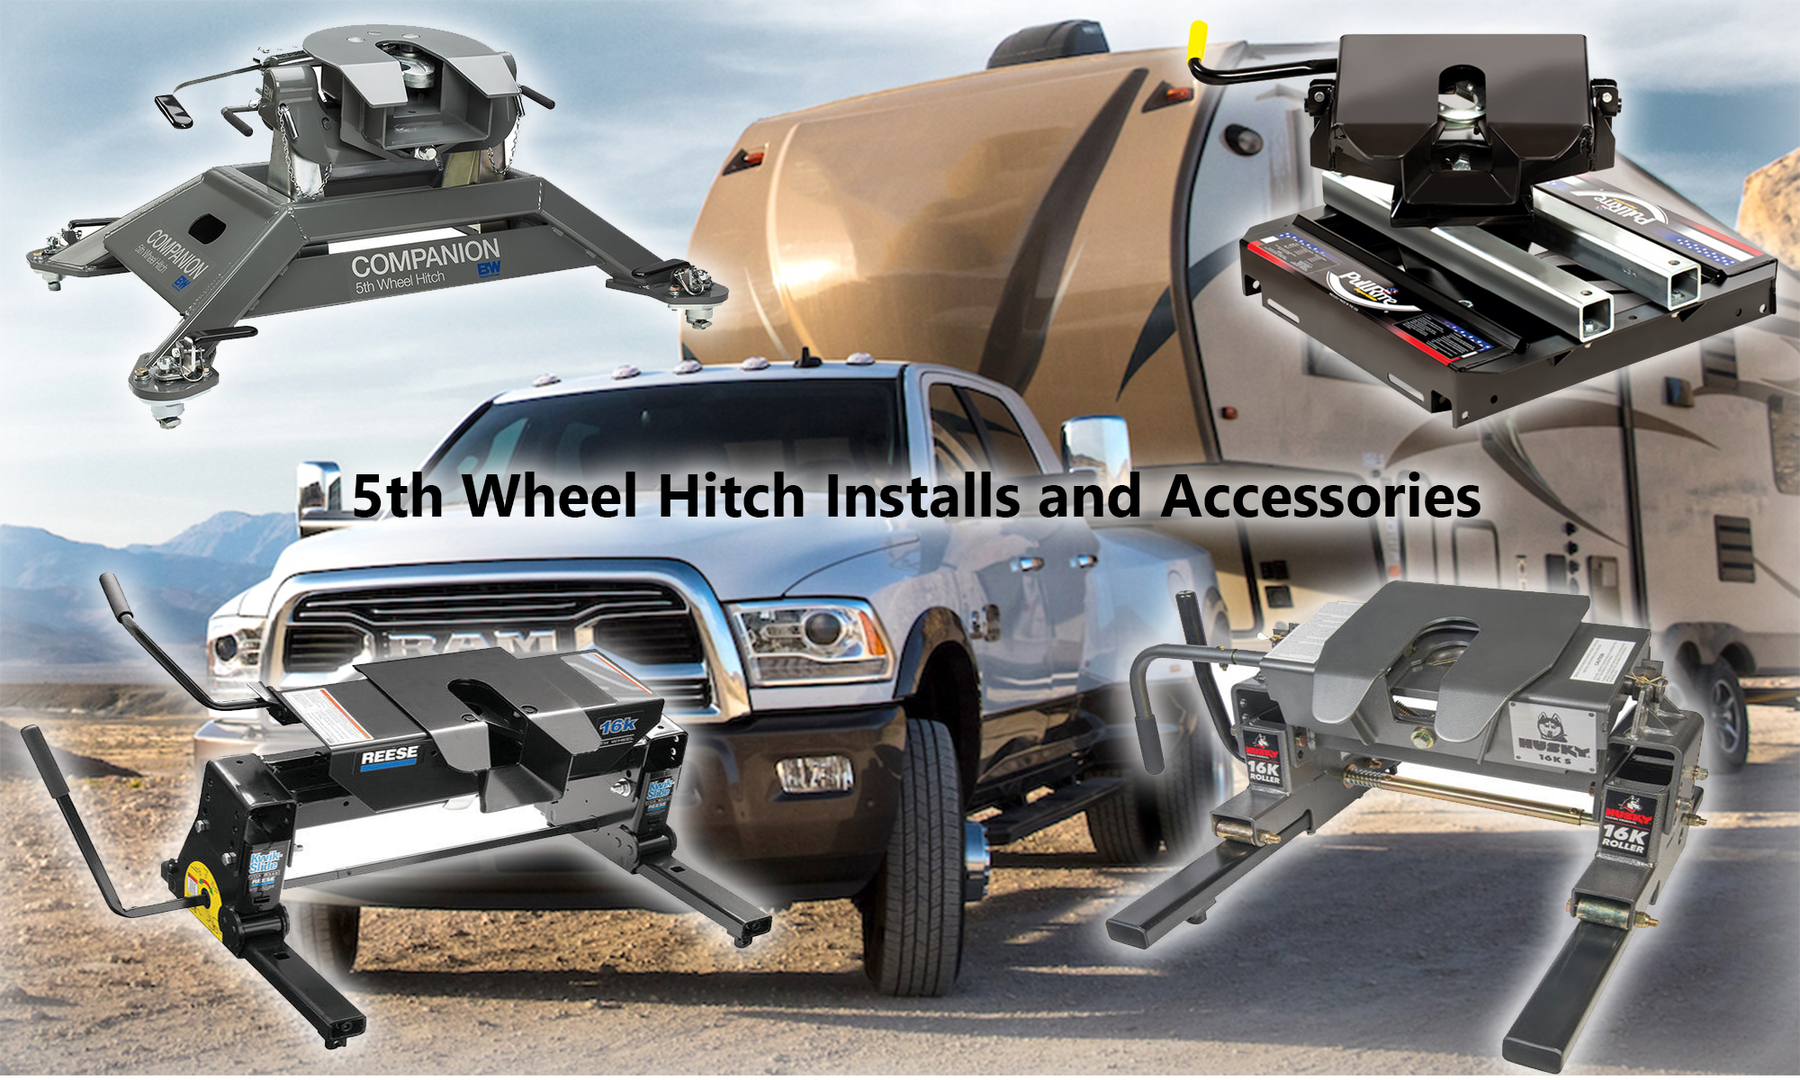 Tow Hitch Installation Near Me >> Canadian Leisure Rv Hitch Installs Towing Trailer Hitch